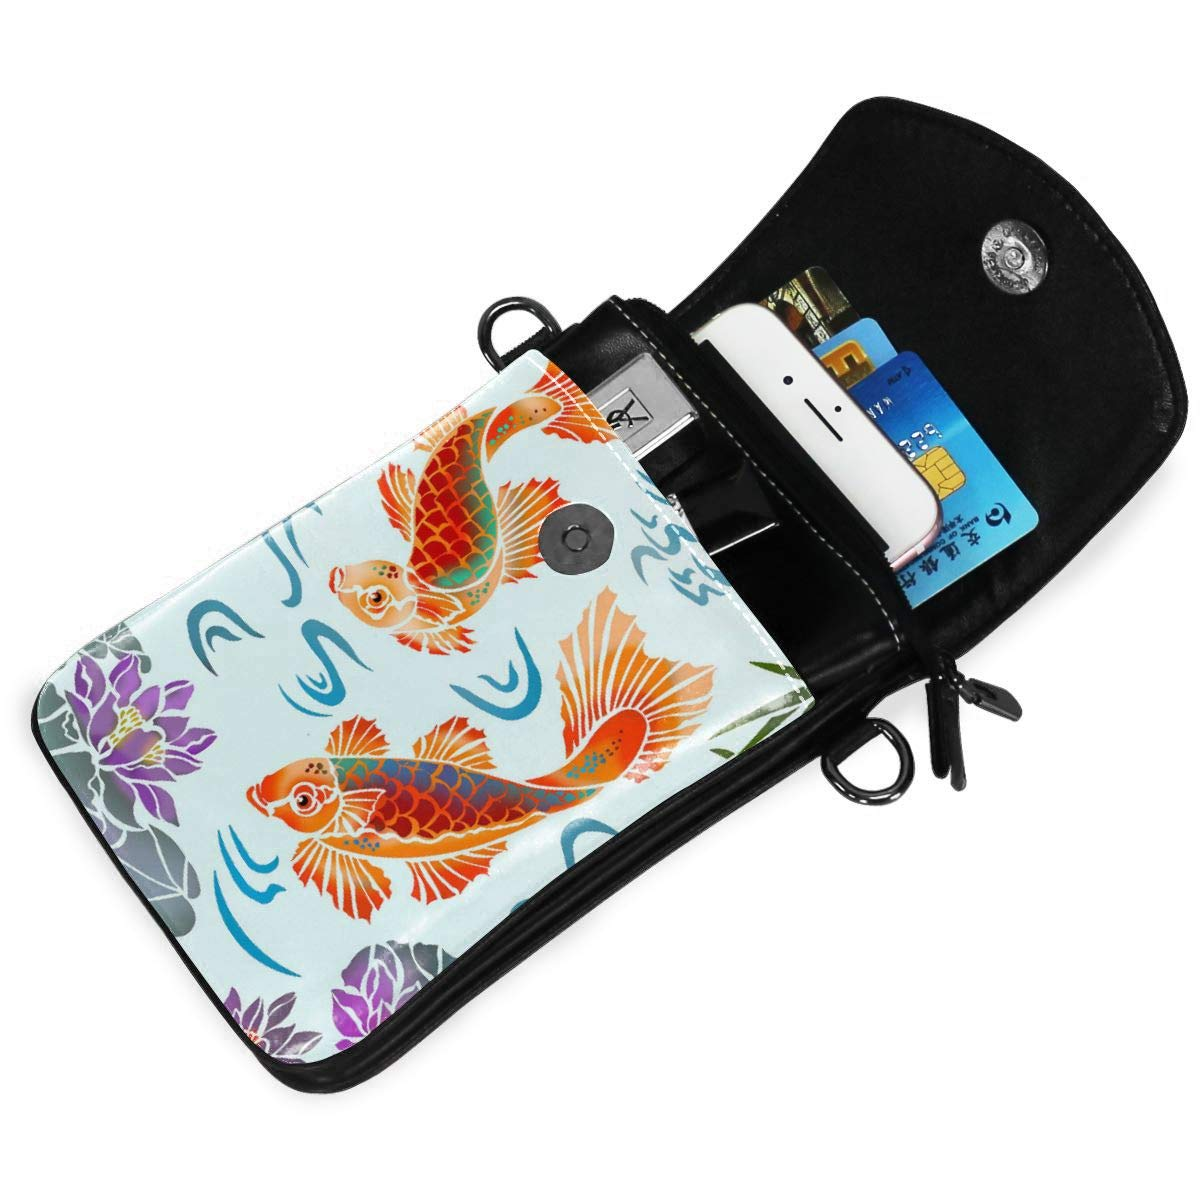 Small Cell Phone Purse Koifish Goldfish Crossbody Bags With Shoulder Strap Coin Purse Wallet For Women,Girls